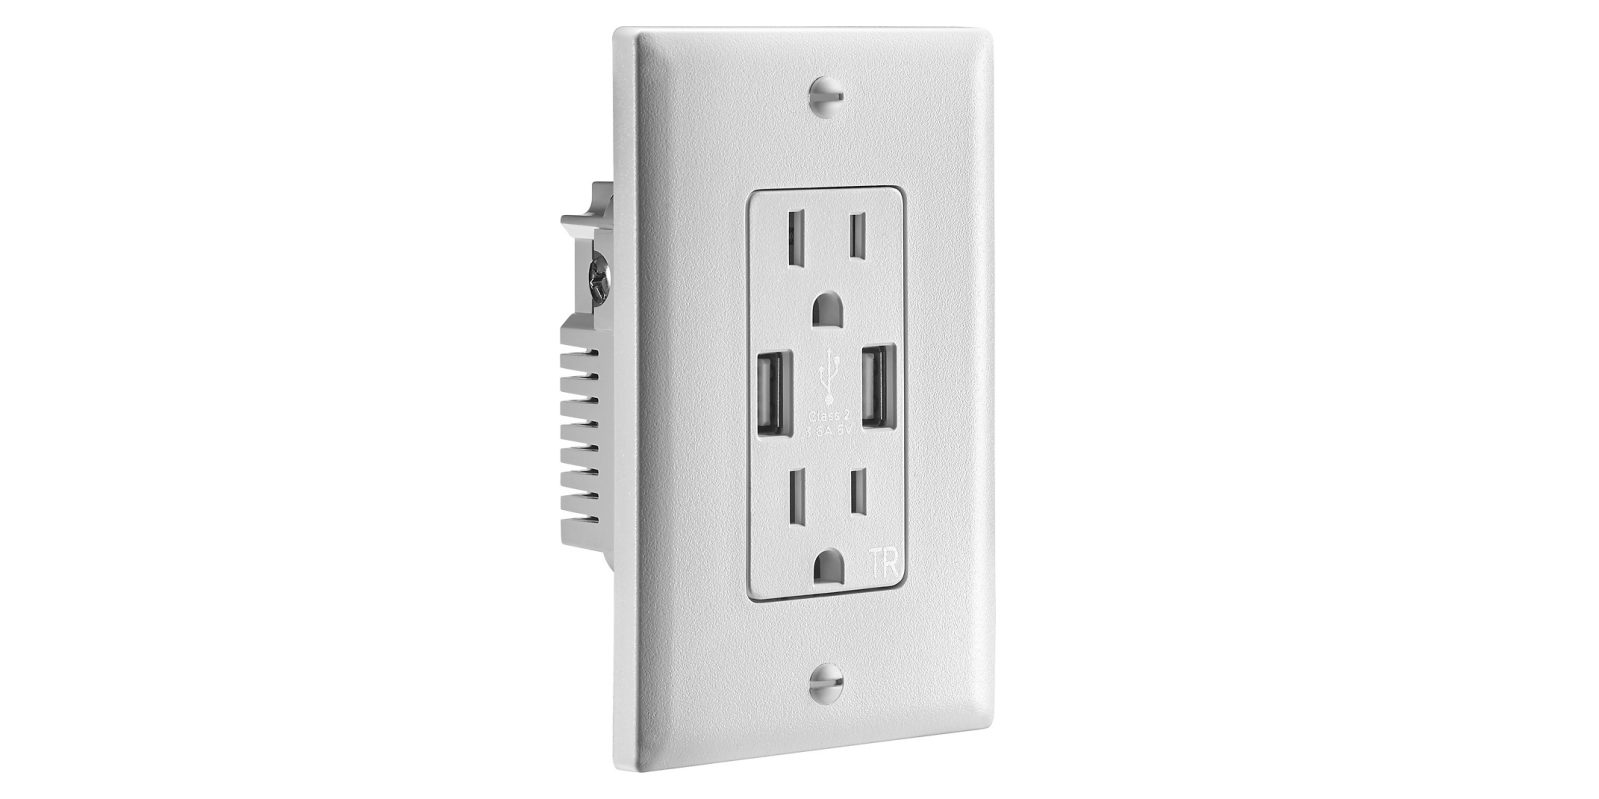 Insignia's in-wall outlet packs 3.6A and two USB ports for $10 (Reg. $30)